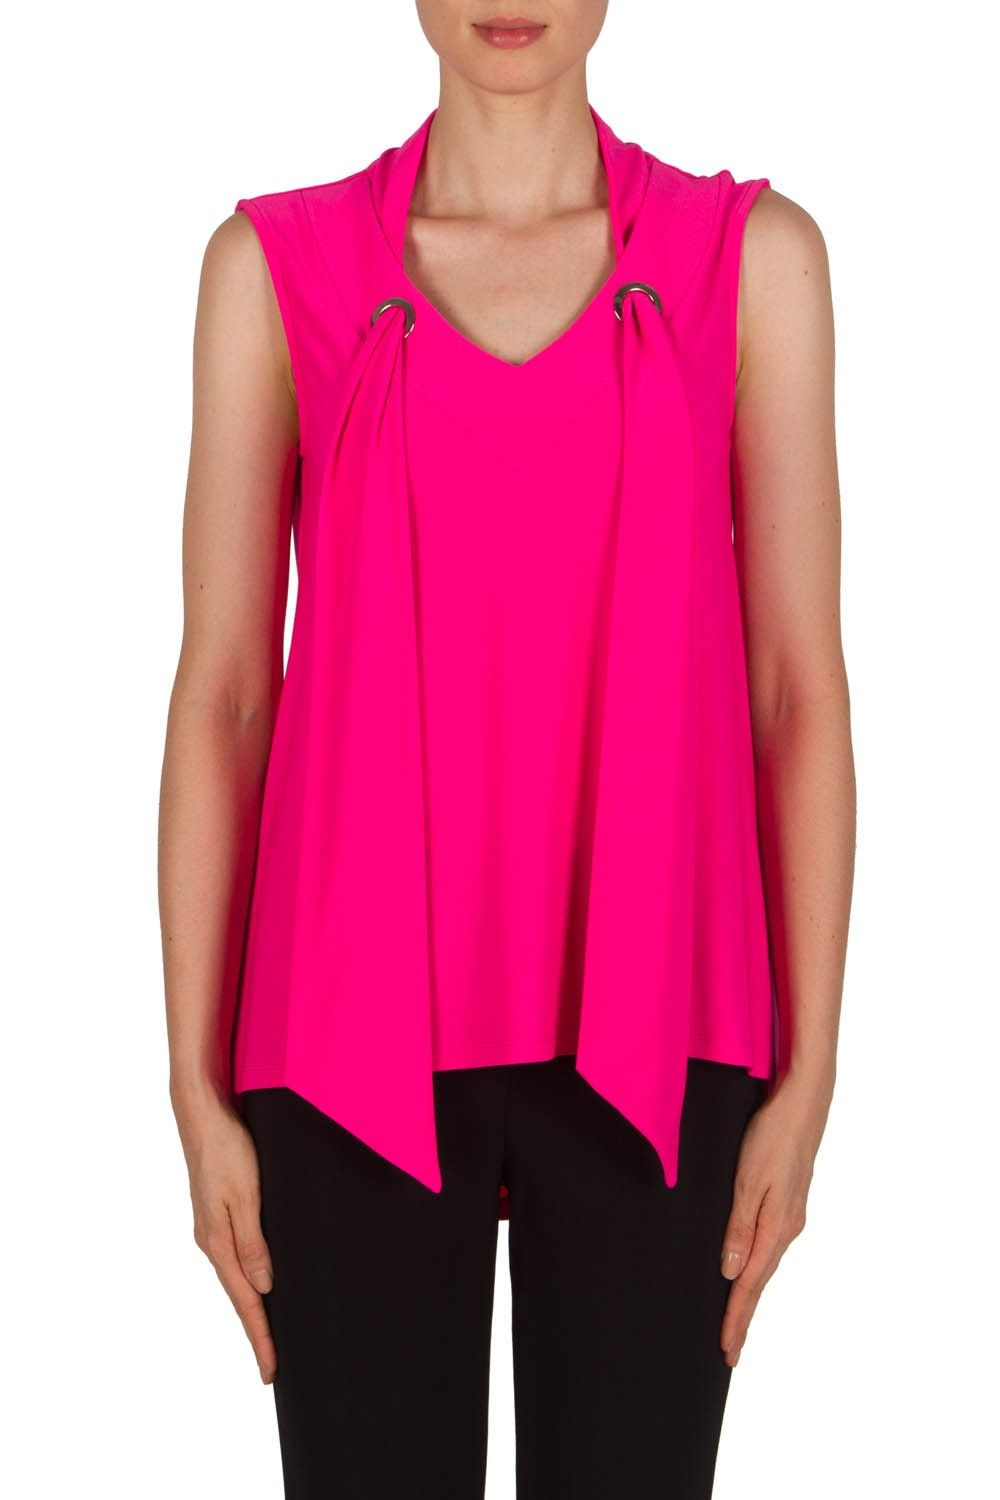 medium resolution of style number 181118 color neon pink material 96 polyester 4 spandex